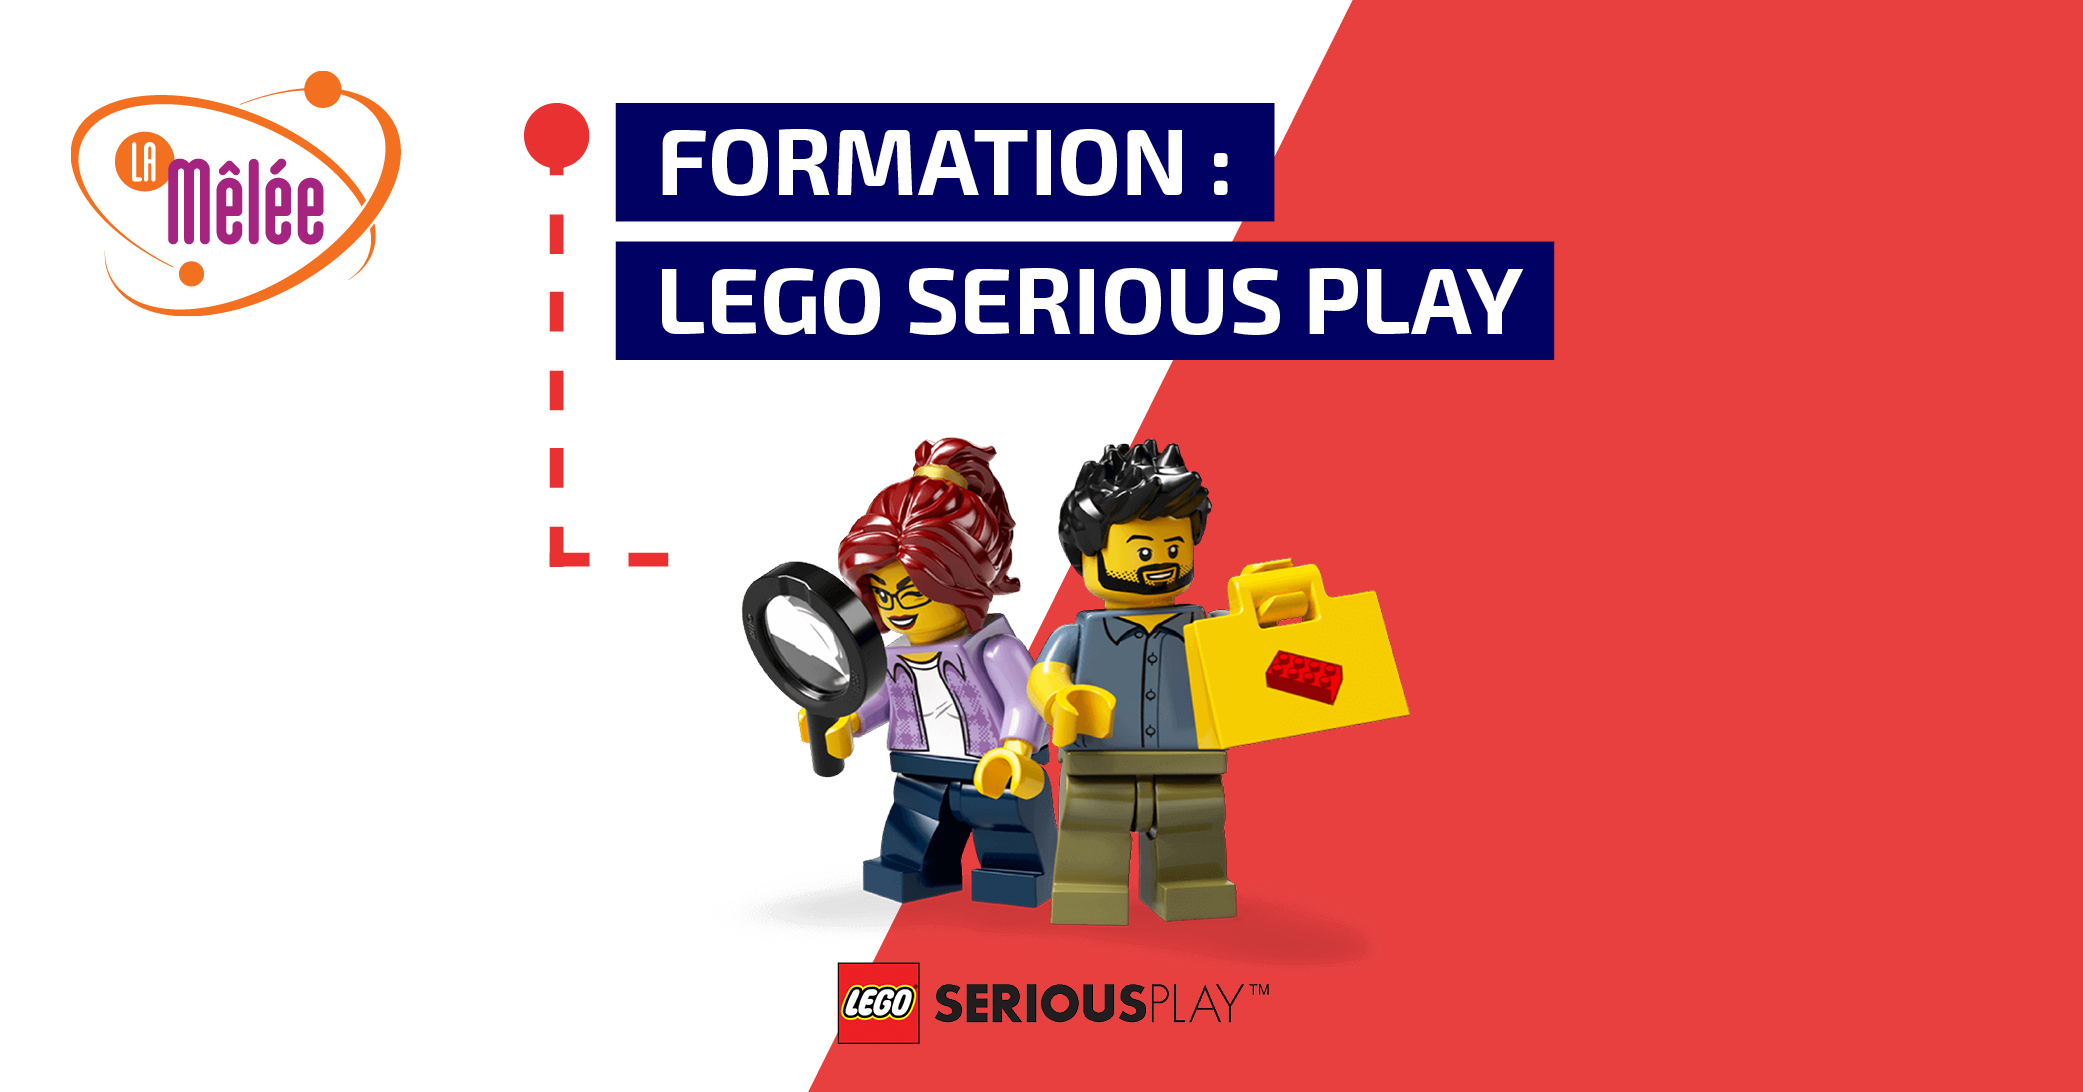 Formation : Lego Serious Play